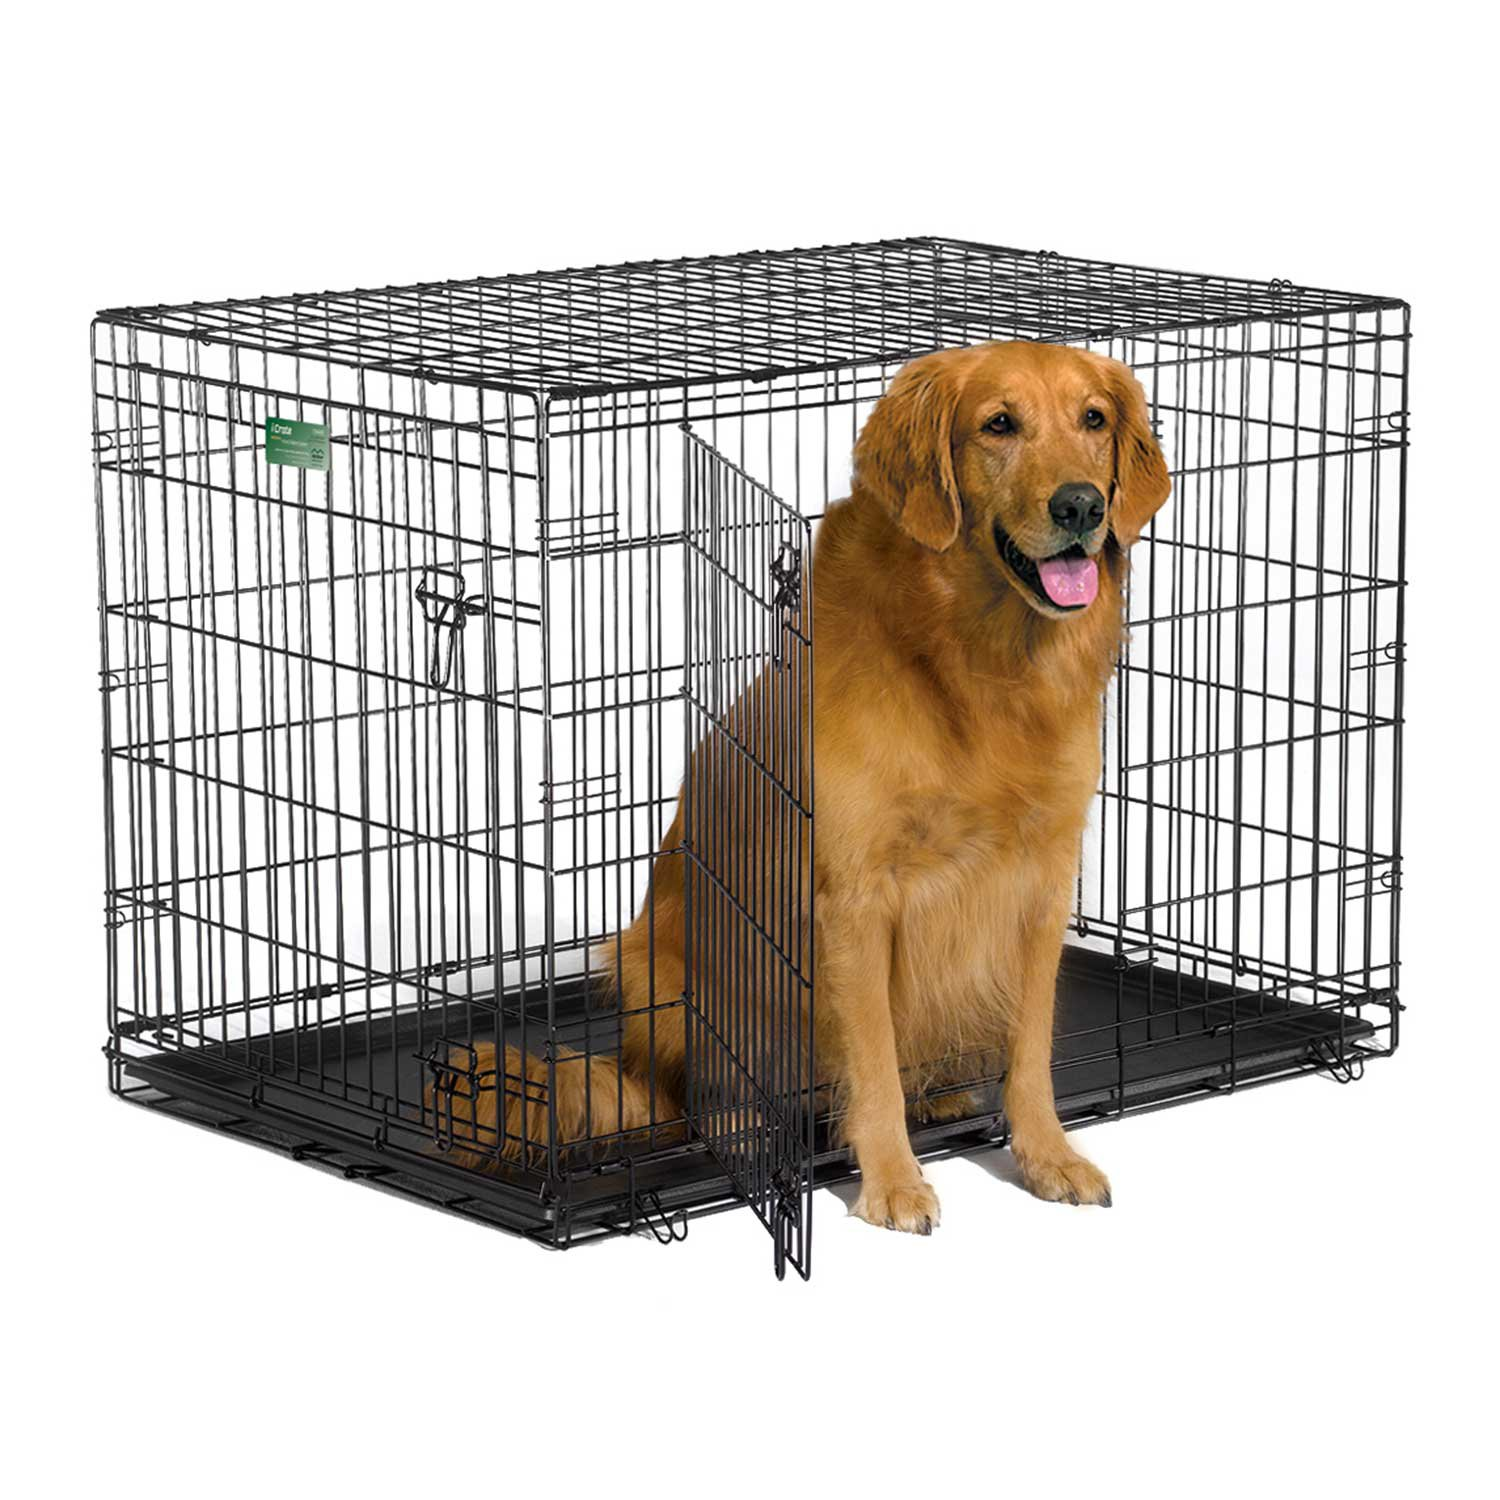 Midwest iCrate Double Door Folding Dog Crate 42 L X 28 W X 30 H Large Black